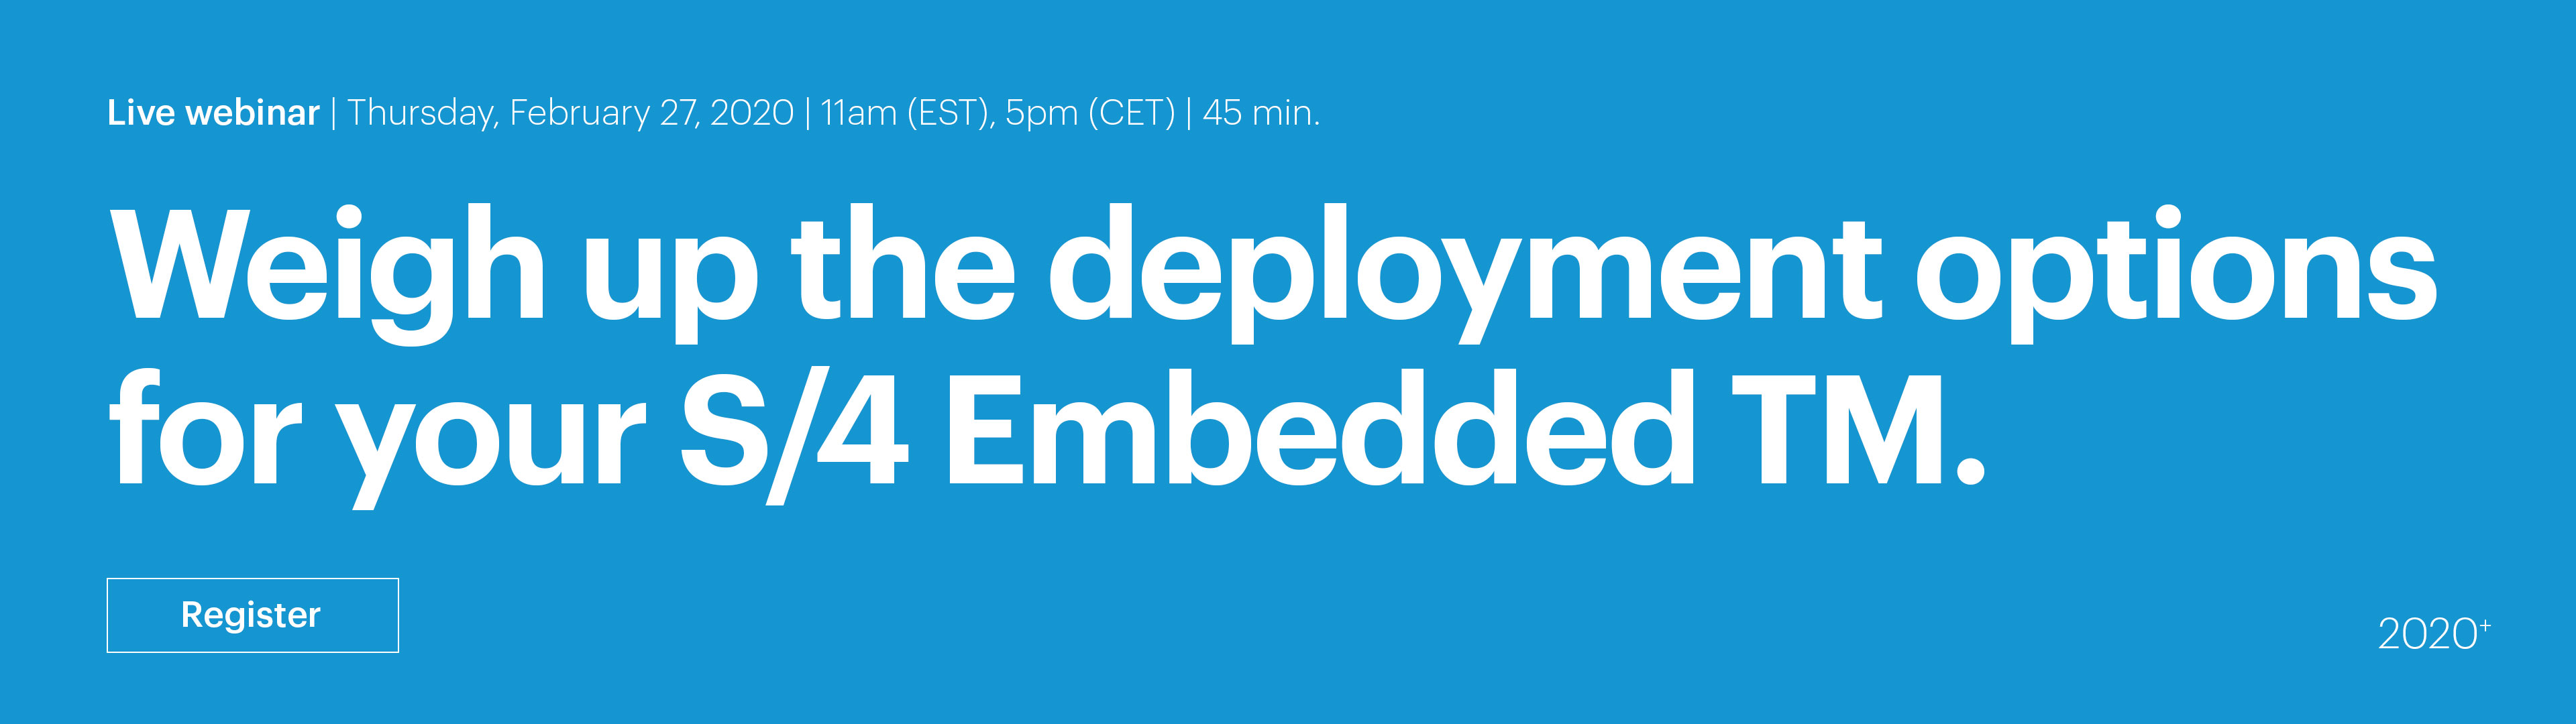 Webinar about S/4 embedded TM: A guide to the best choices   Feb 27th